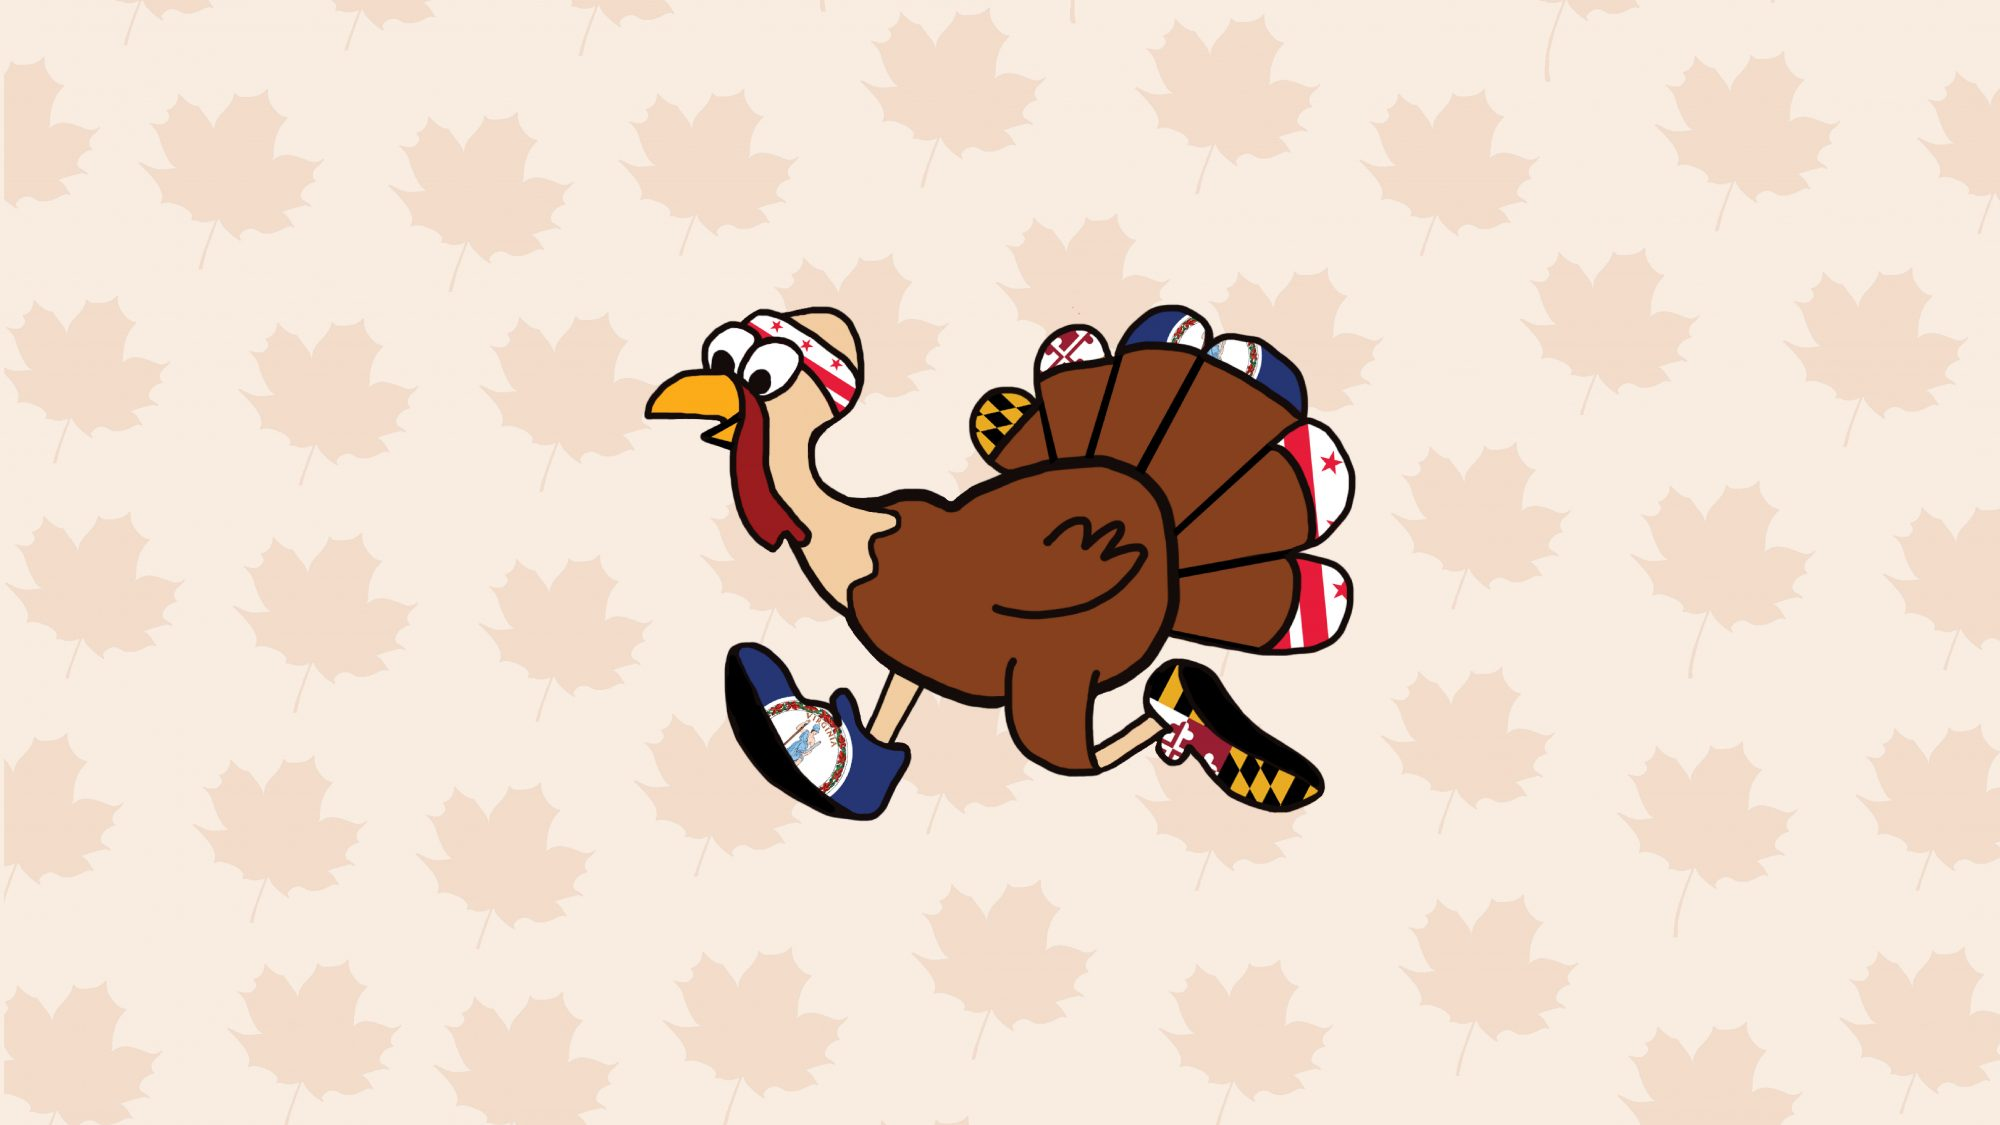 Graphic with a cartoon turkey decked out in running gear decorated with the Maryland, DC, and Virginia flags. The background is a light rusty orange with a faded maple leaf pattern.